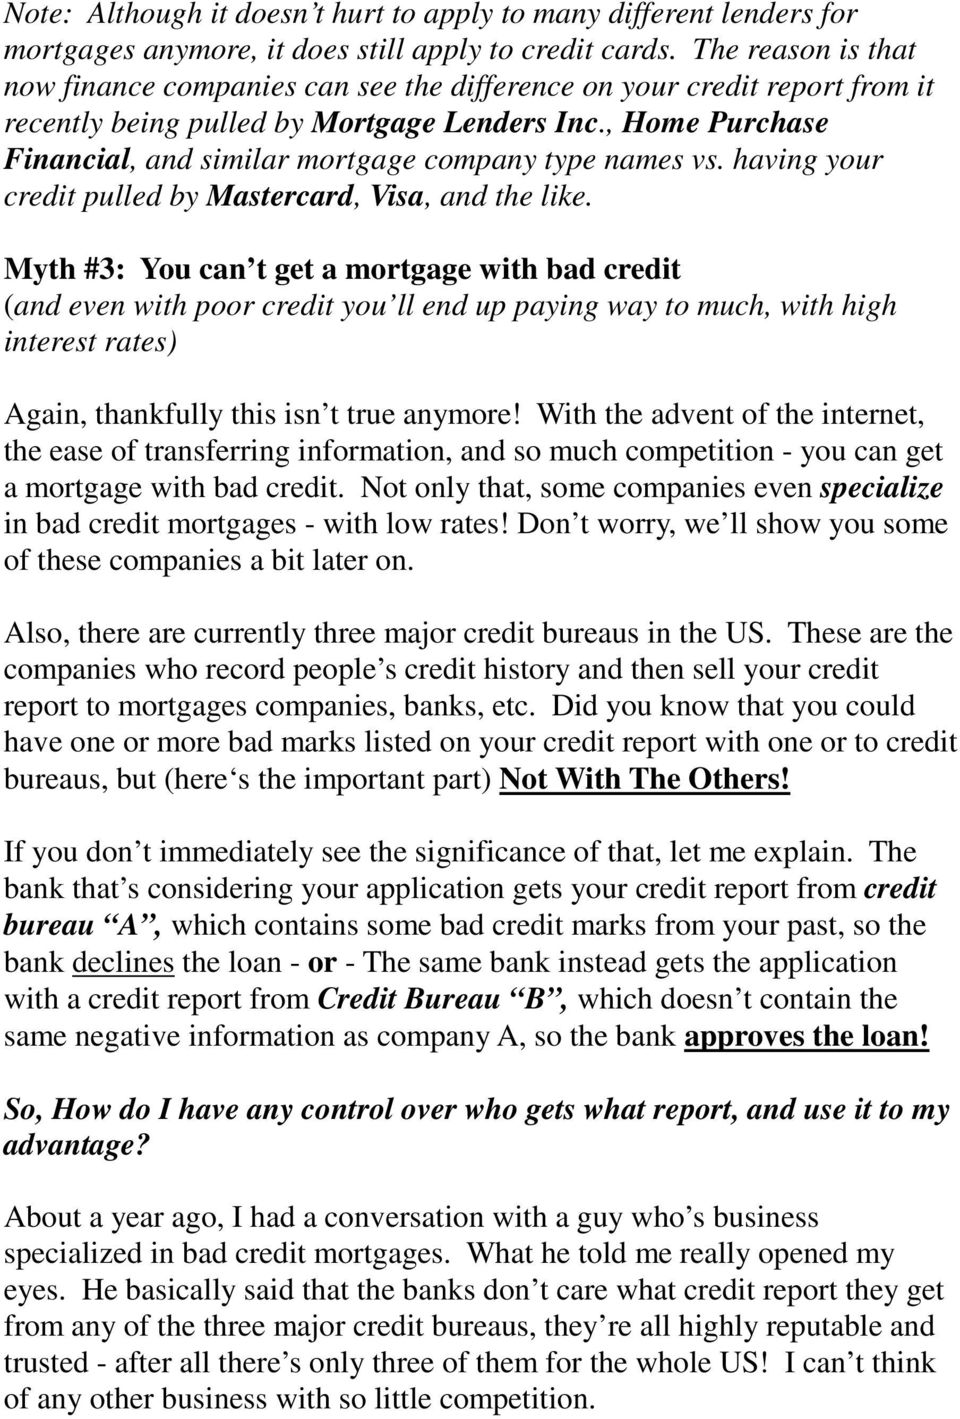 , Home Purchase Financial, and similar mortgage company type names vs. having your credit pulled by Mastercard, Visa, and the like.